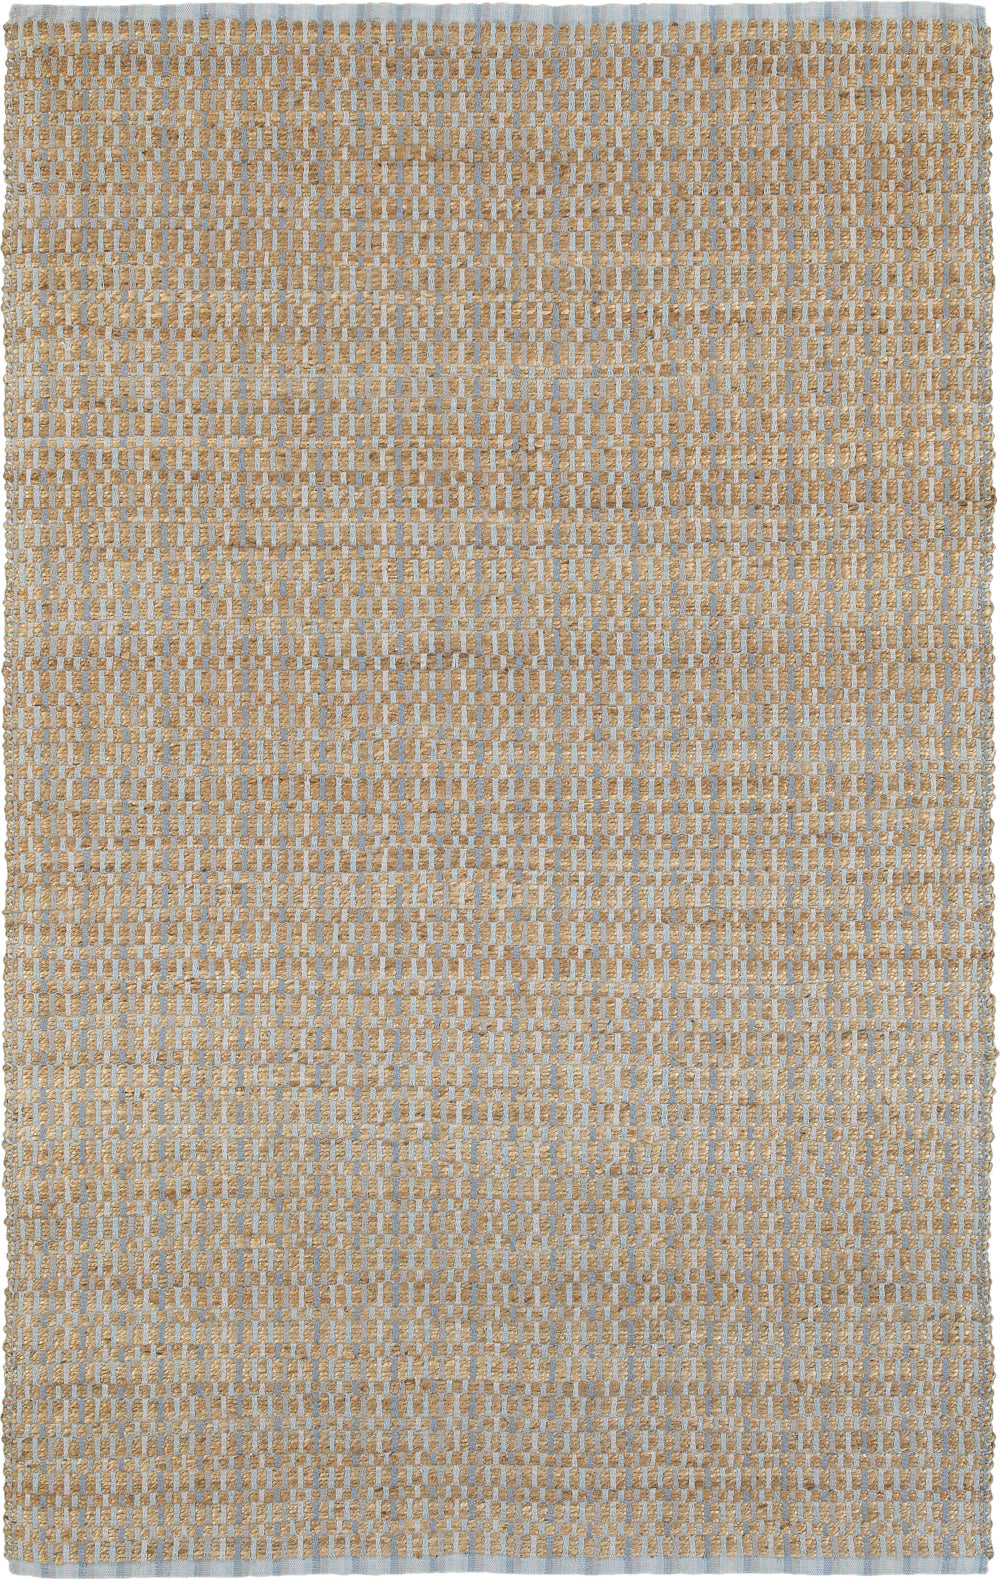 LR Resources Natural Fiber 3307 Sky Blue Area Rug main image